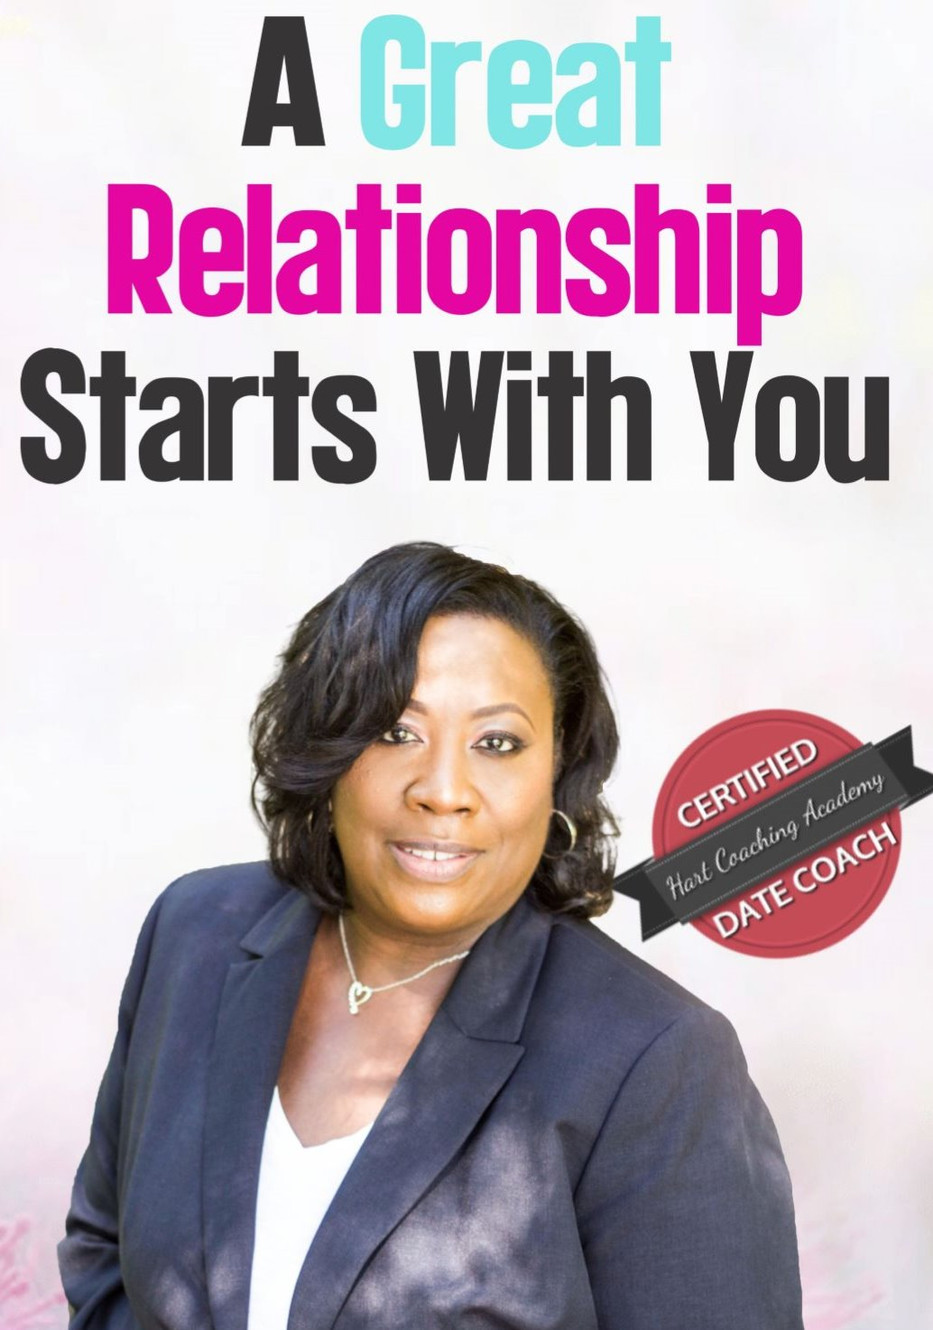 certified dating and relationship coach